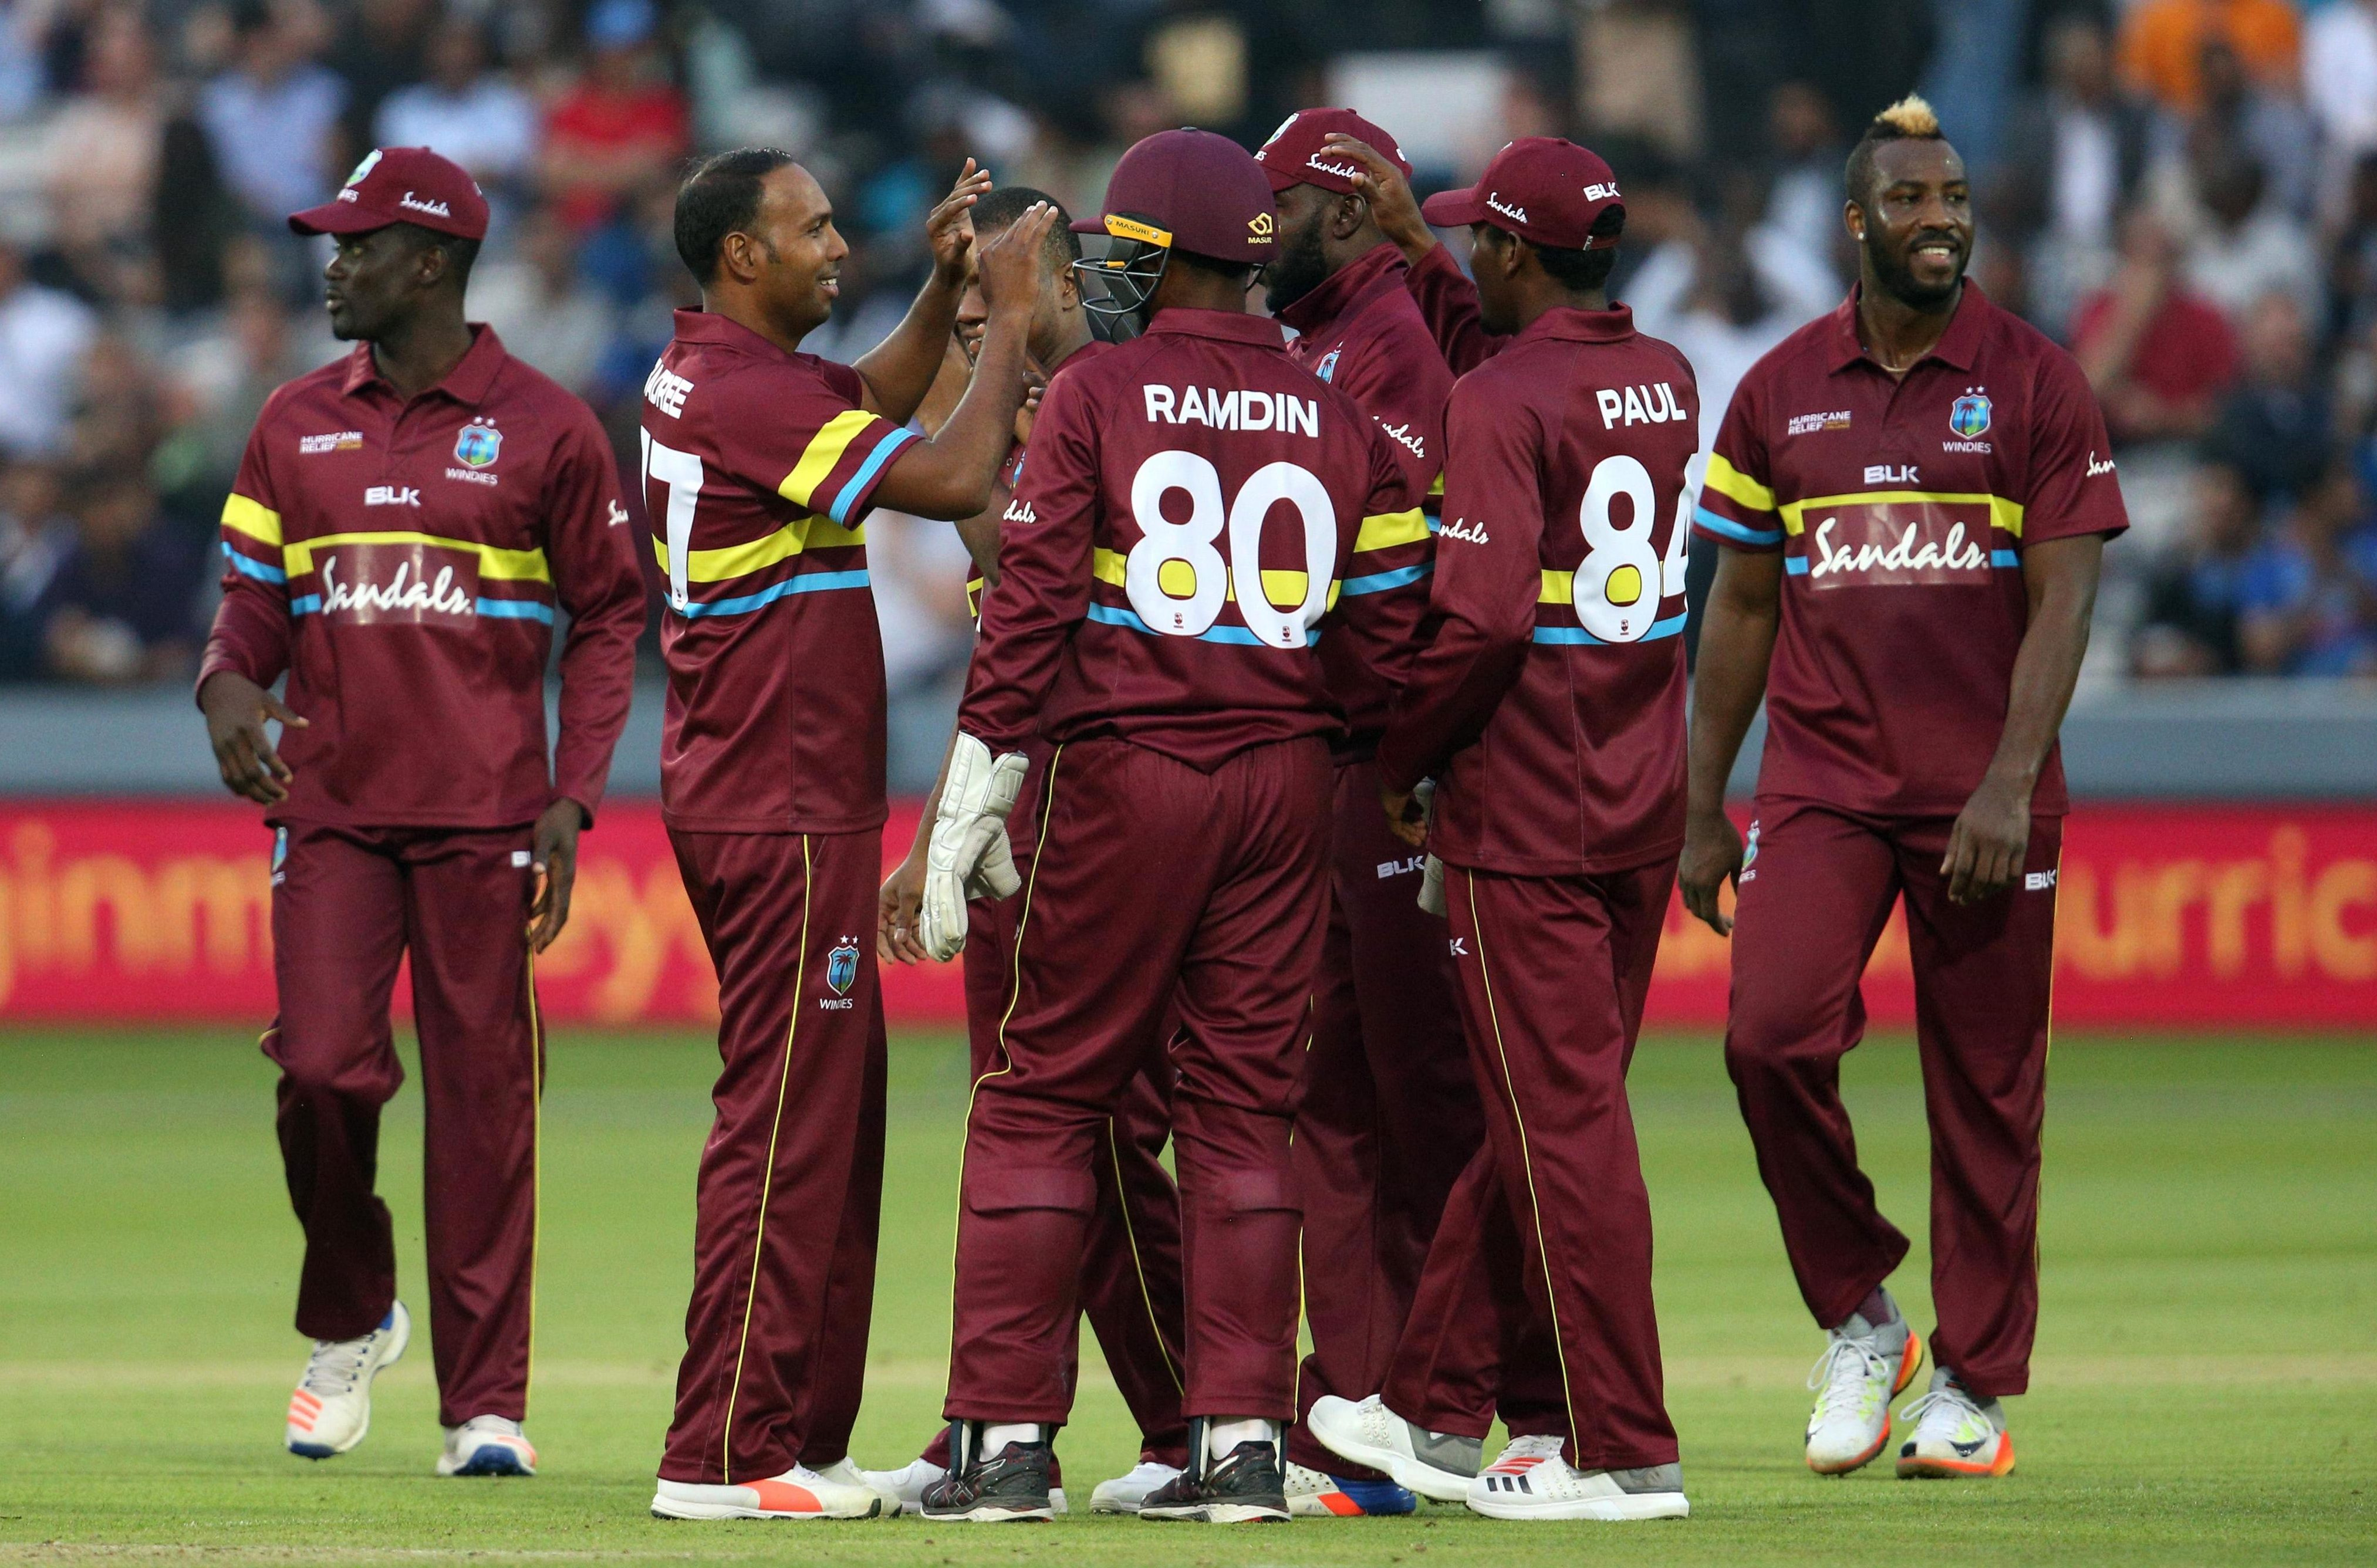 West Indies celebrated a dominant victory at Lord's on Thursday